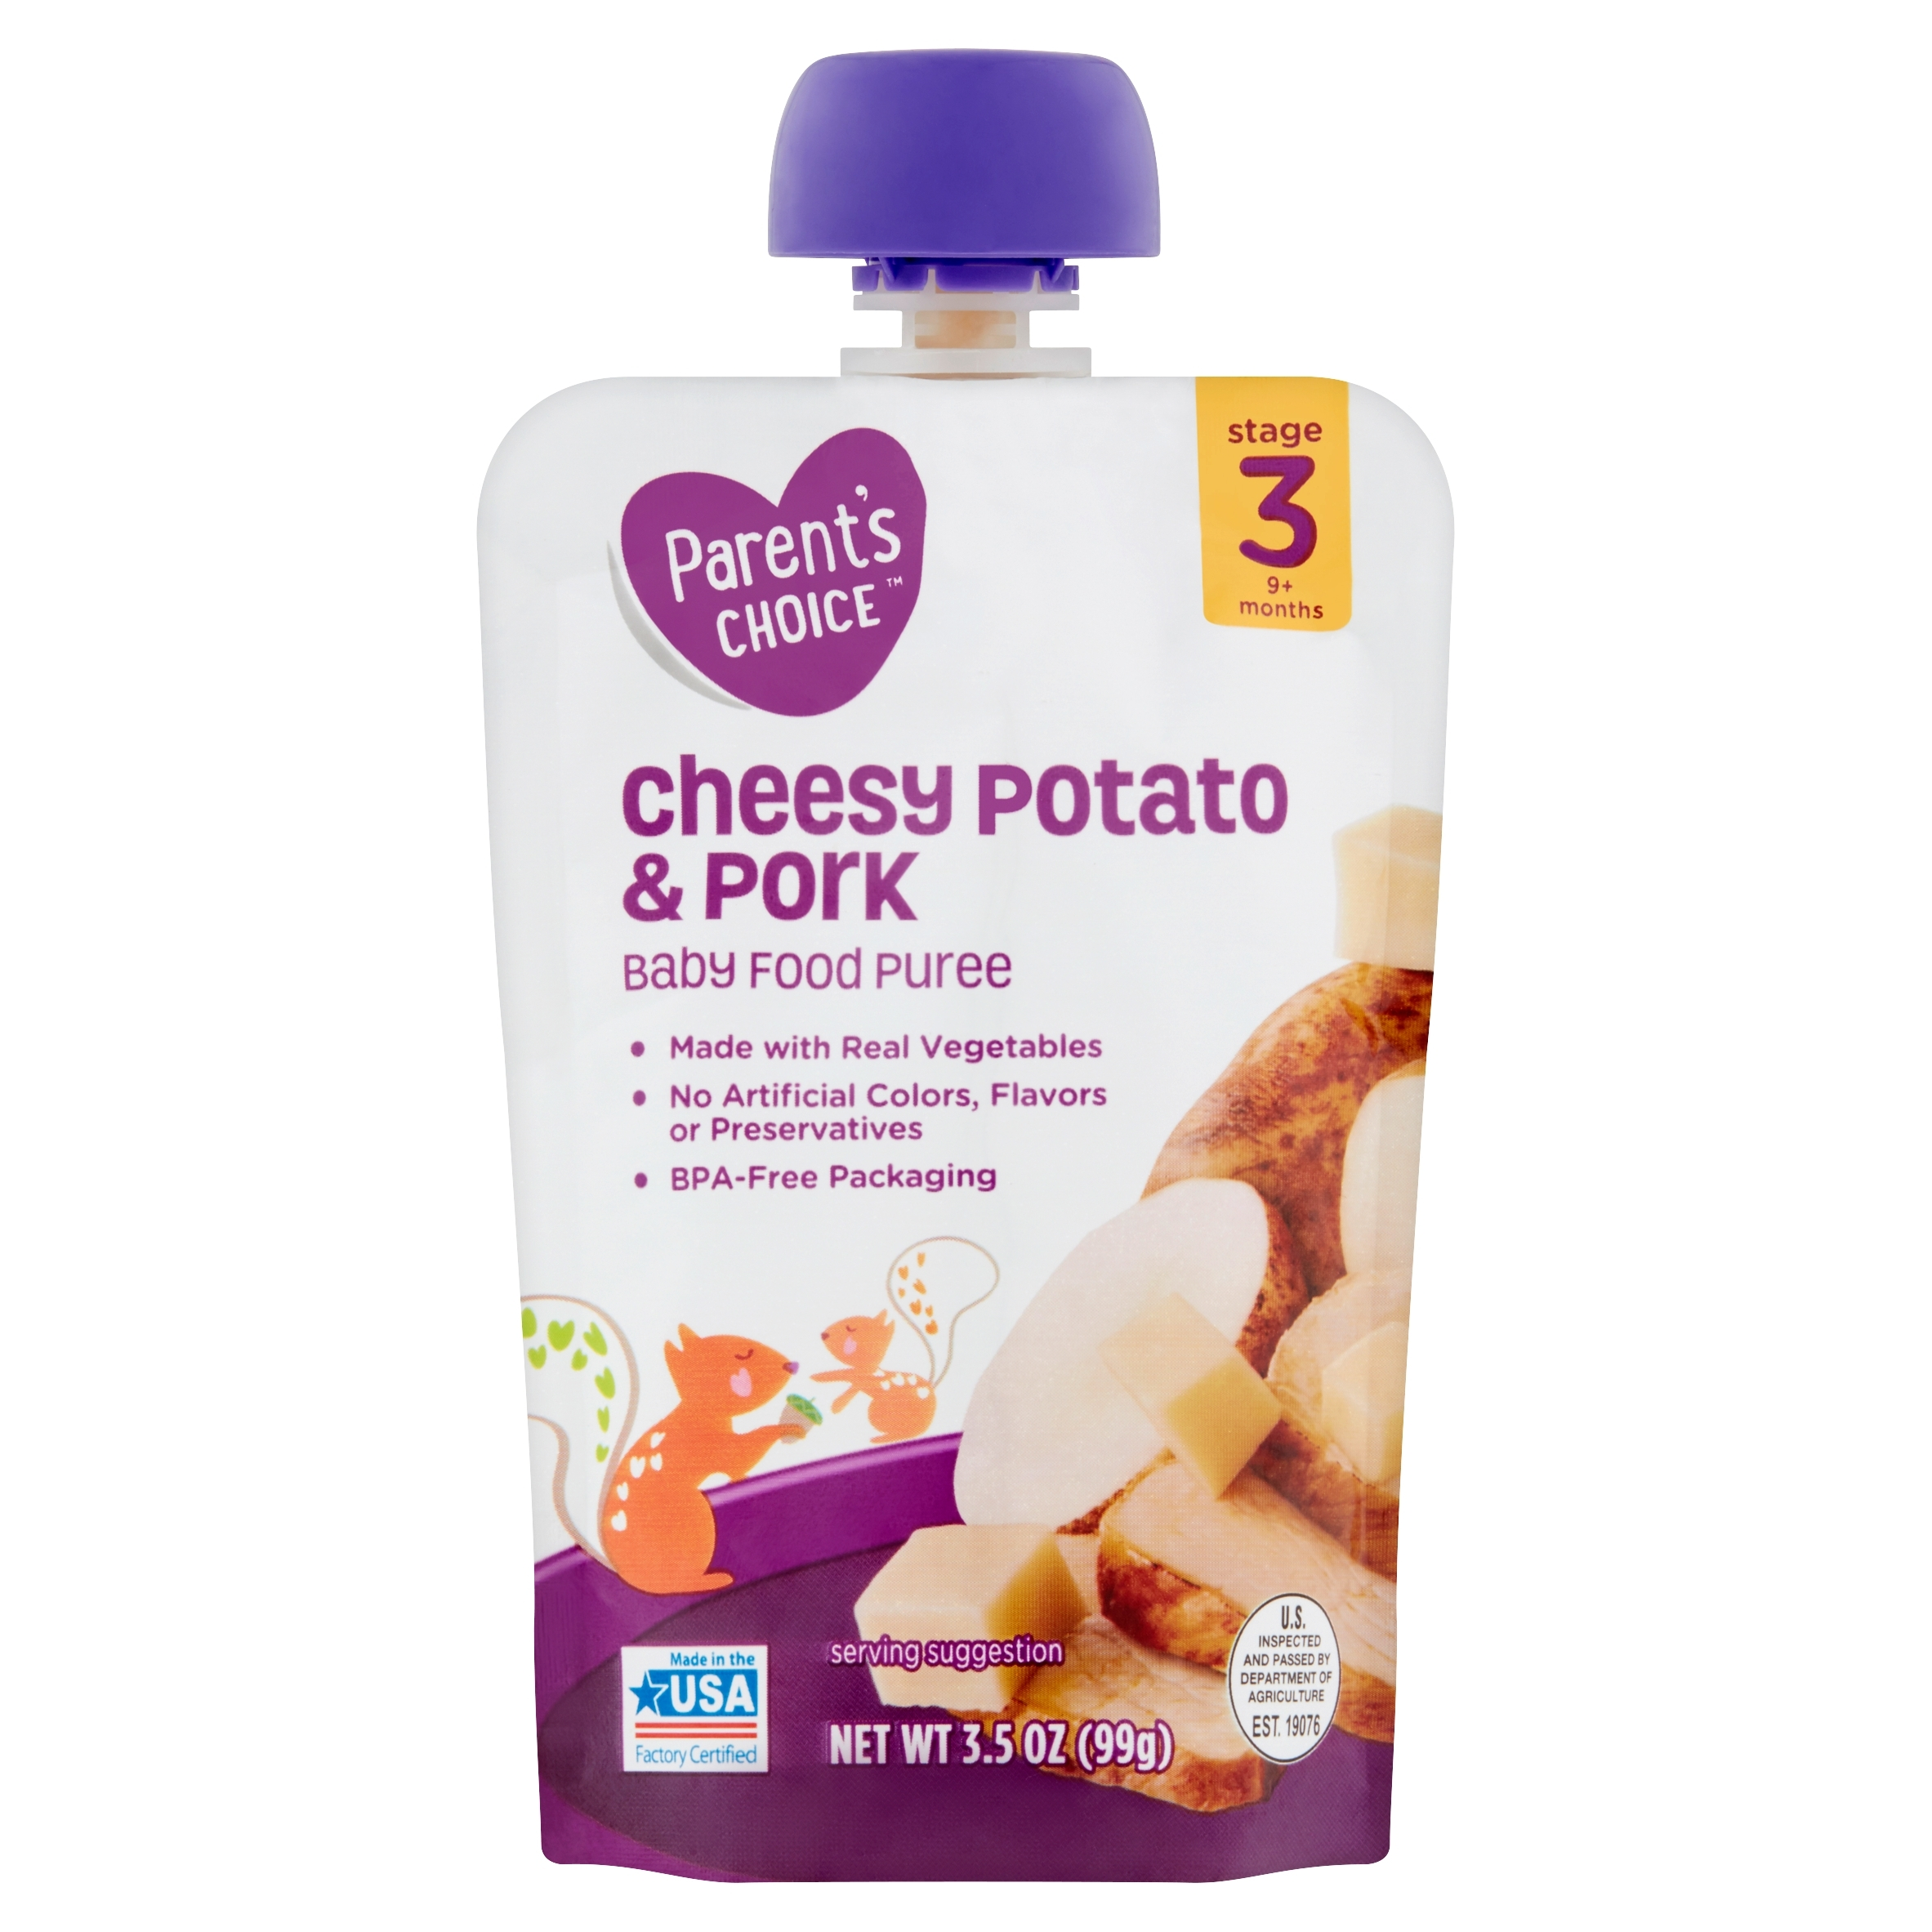 Parent's Choice Cheesy Potatoes & Pork, Stage 3, 3.5 oz Pouch